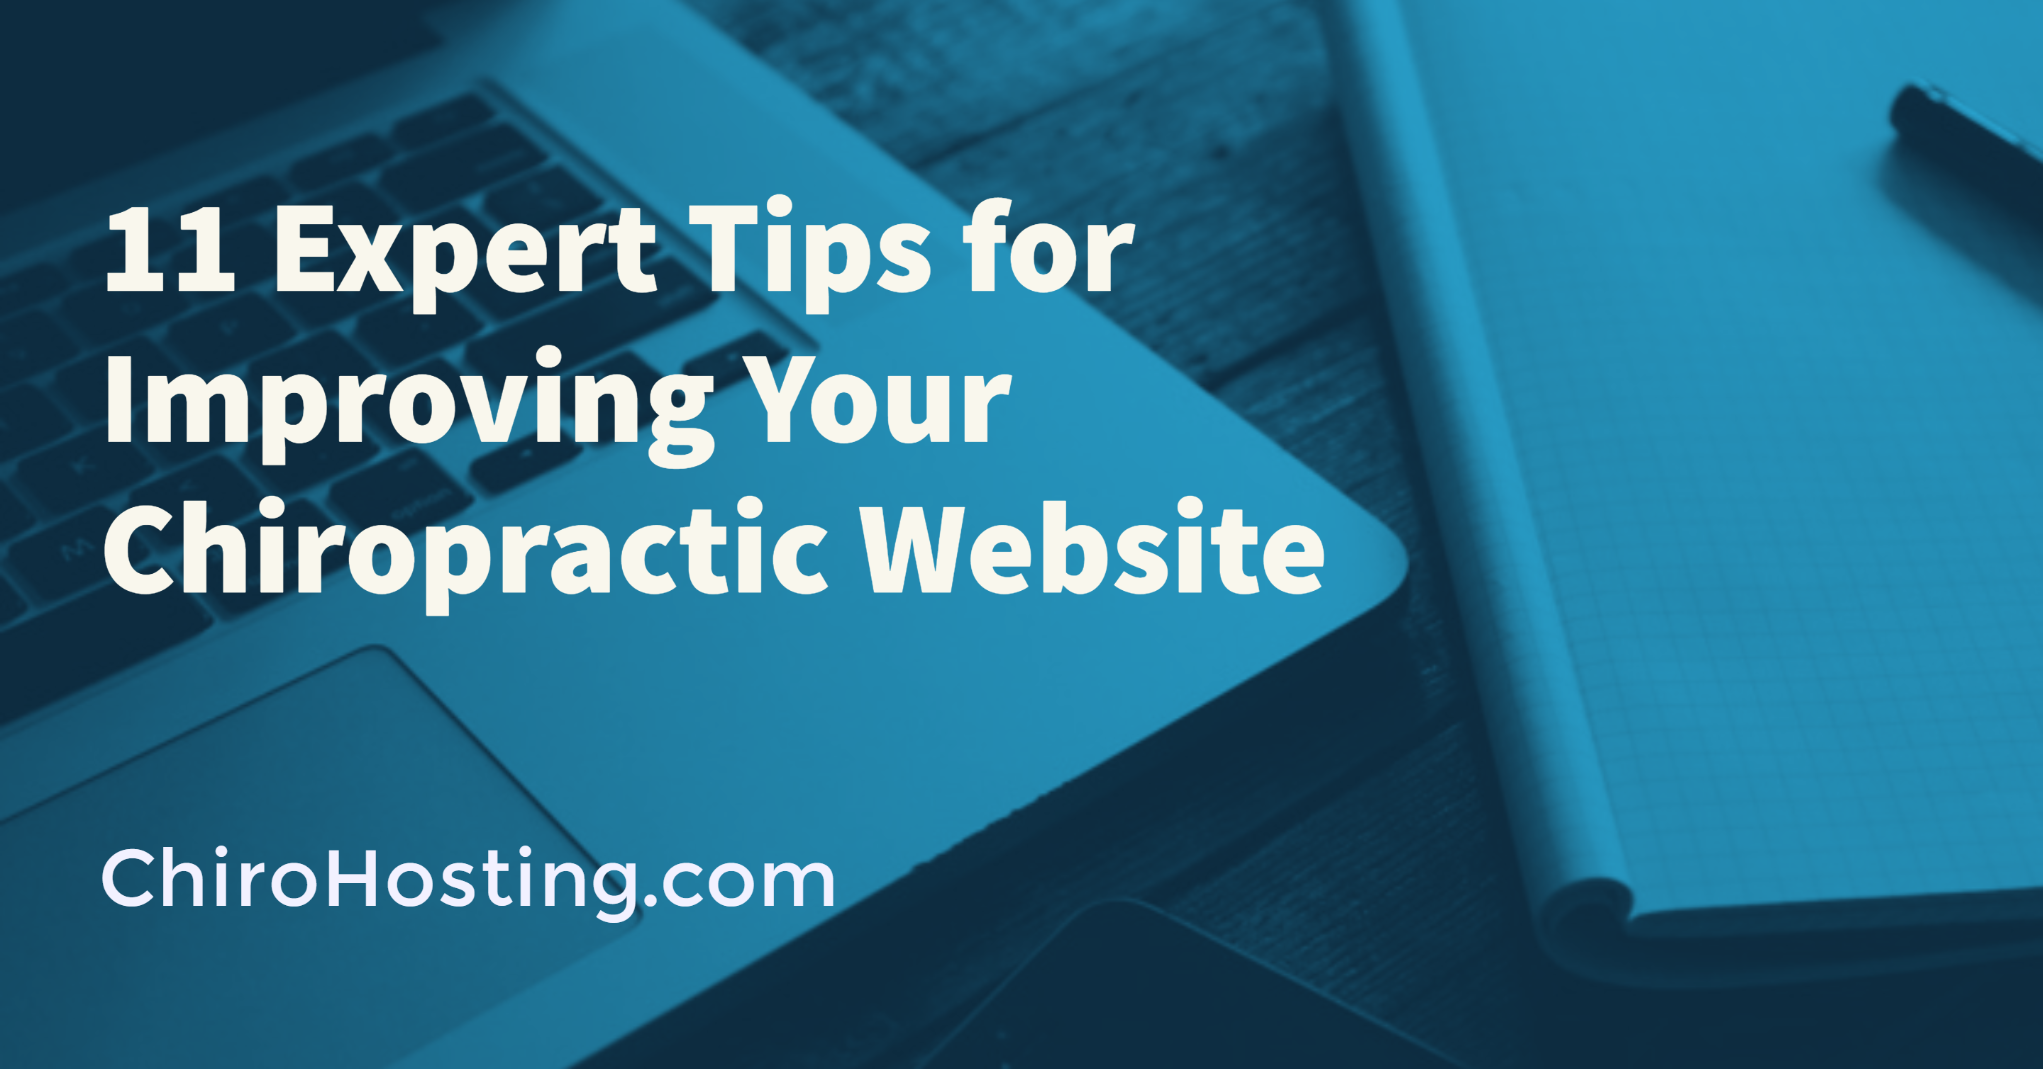 11 Fresh Expert Tips for Chiropractors to Make Your CHIROPRACTIC WEBSITE Not Only Stand Out, but Stand Above Your Local Competition!